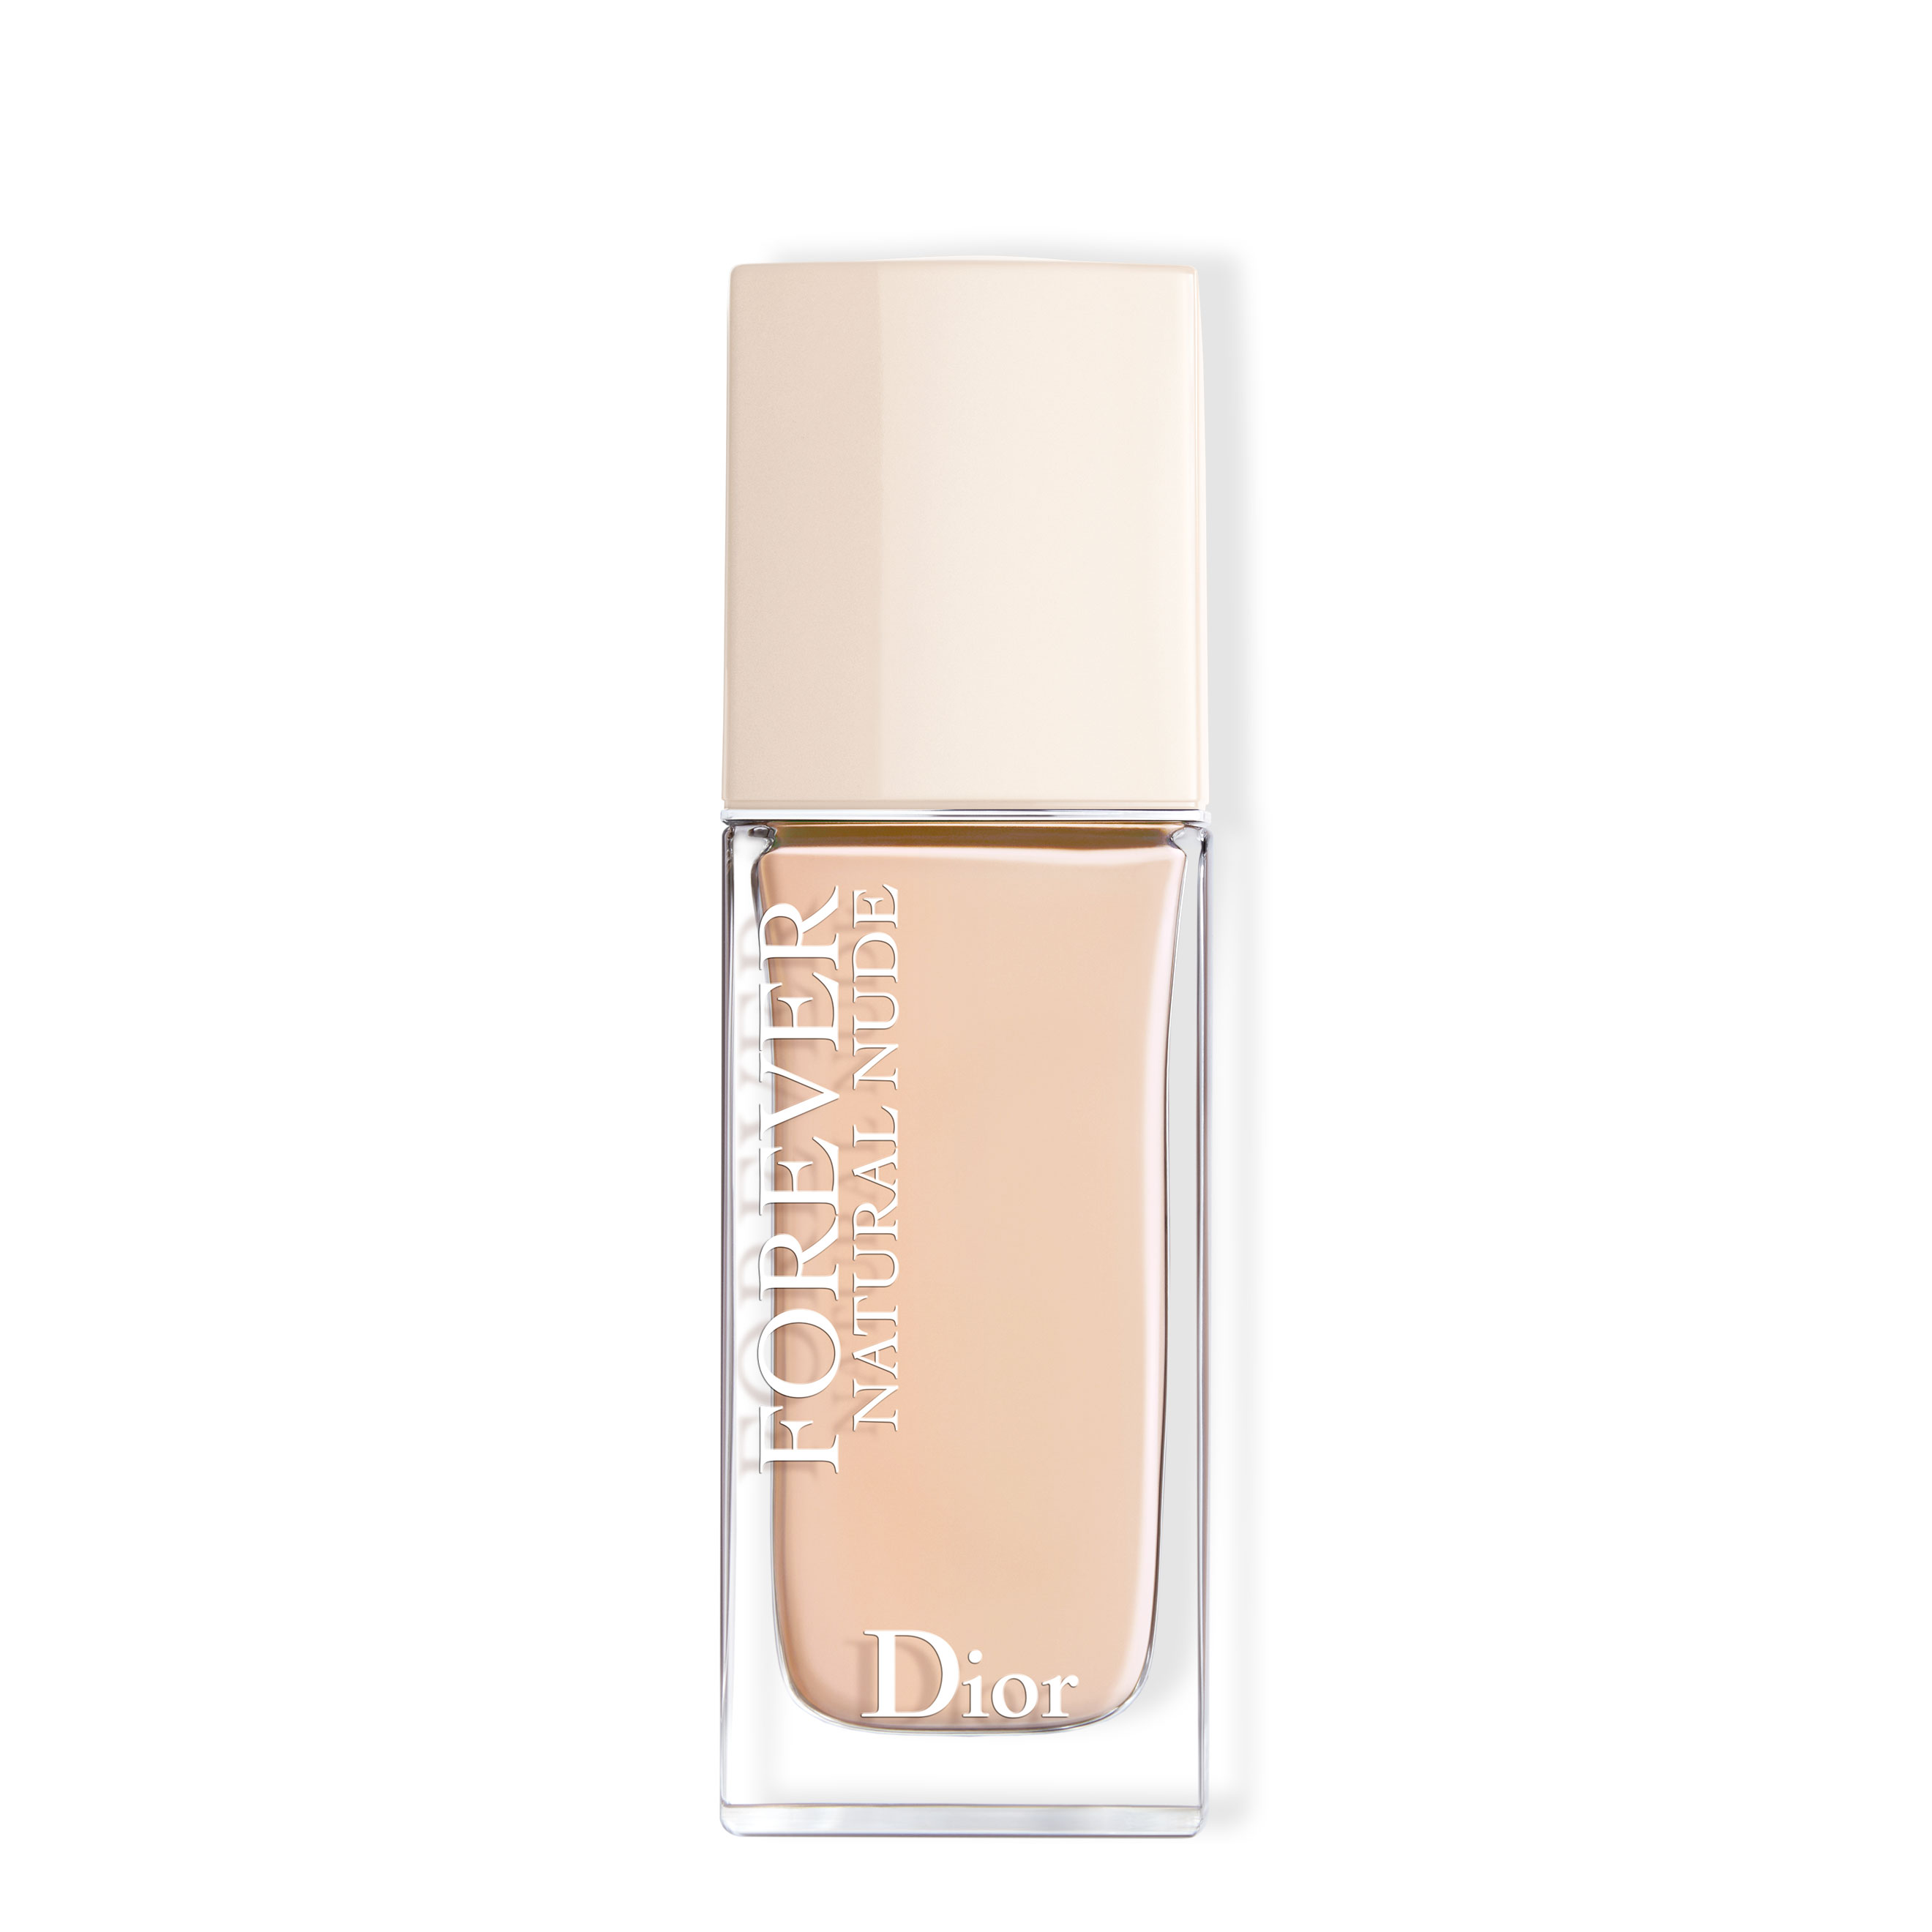 Dior. Dior Forever Natural Nude